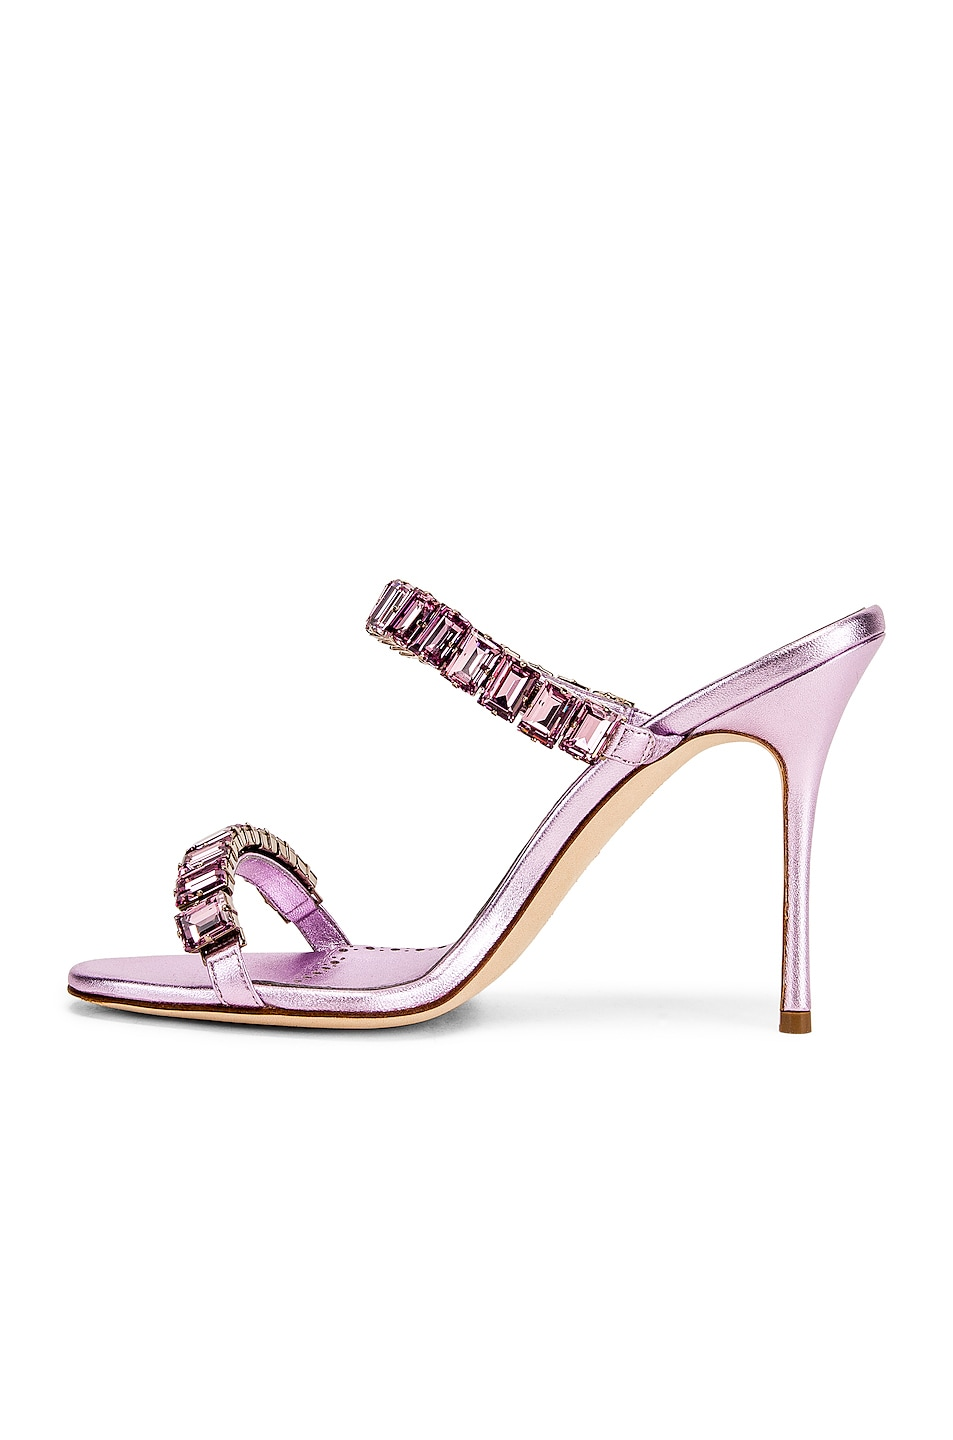 Image 5 of Manolo Blahnik for FWRD Dallitre 105 Sandal in Light Pink Nappa